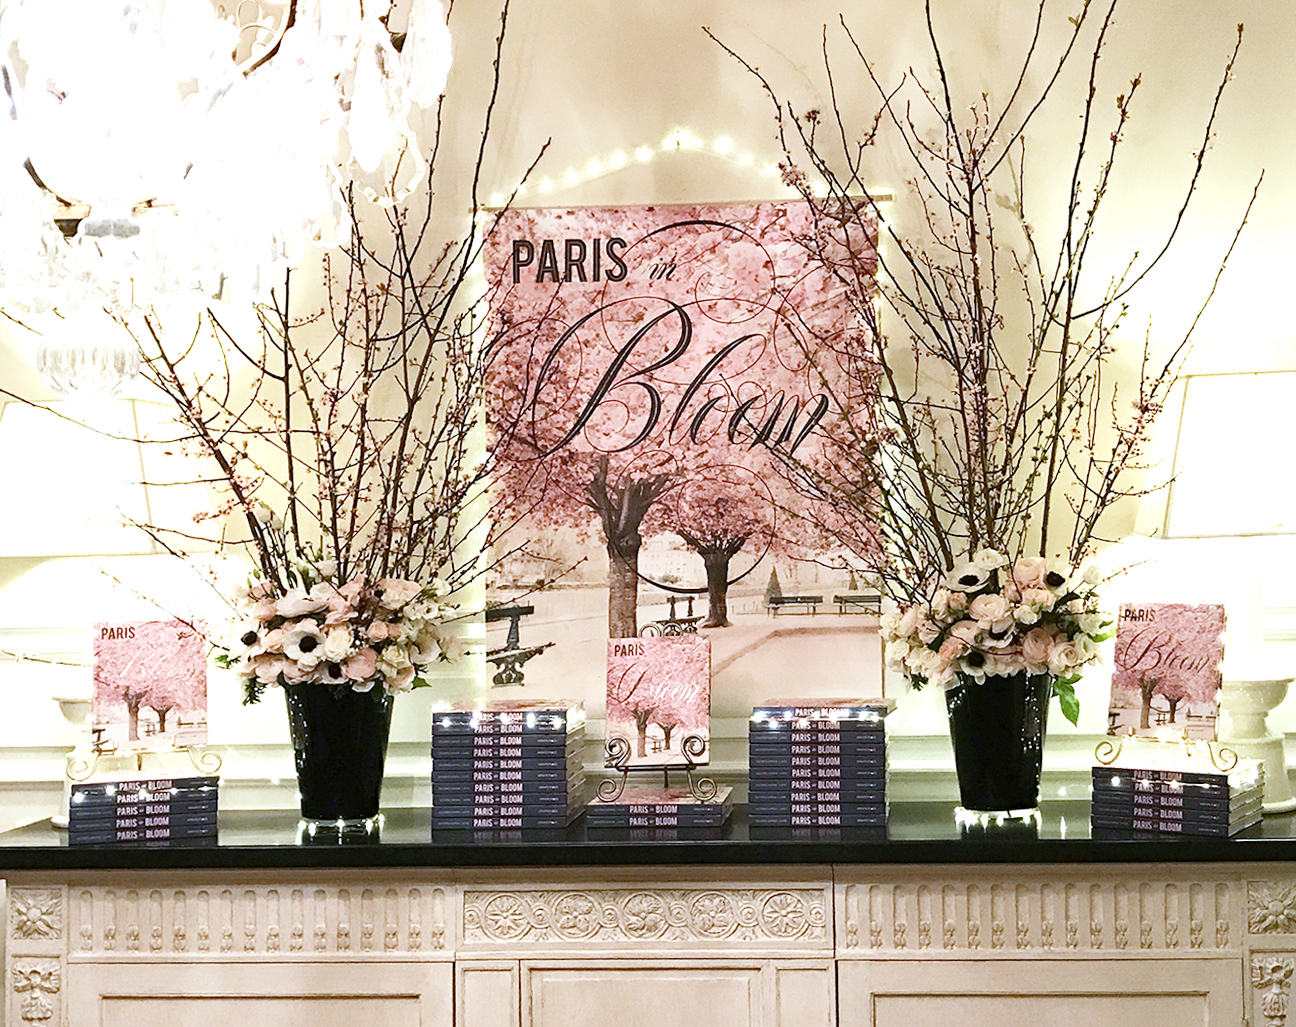 Paris in Bloom Book Release, Paris